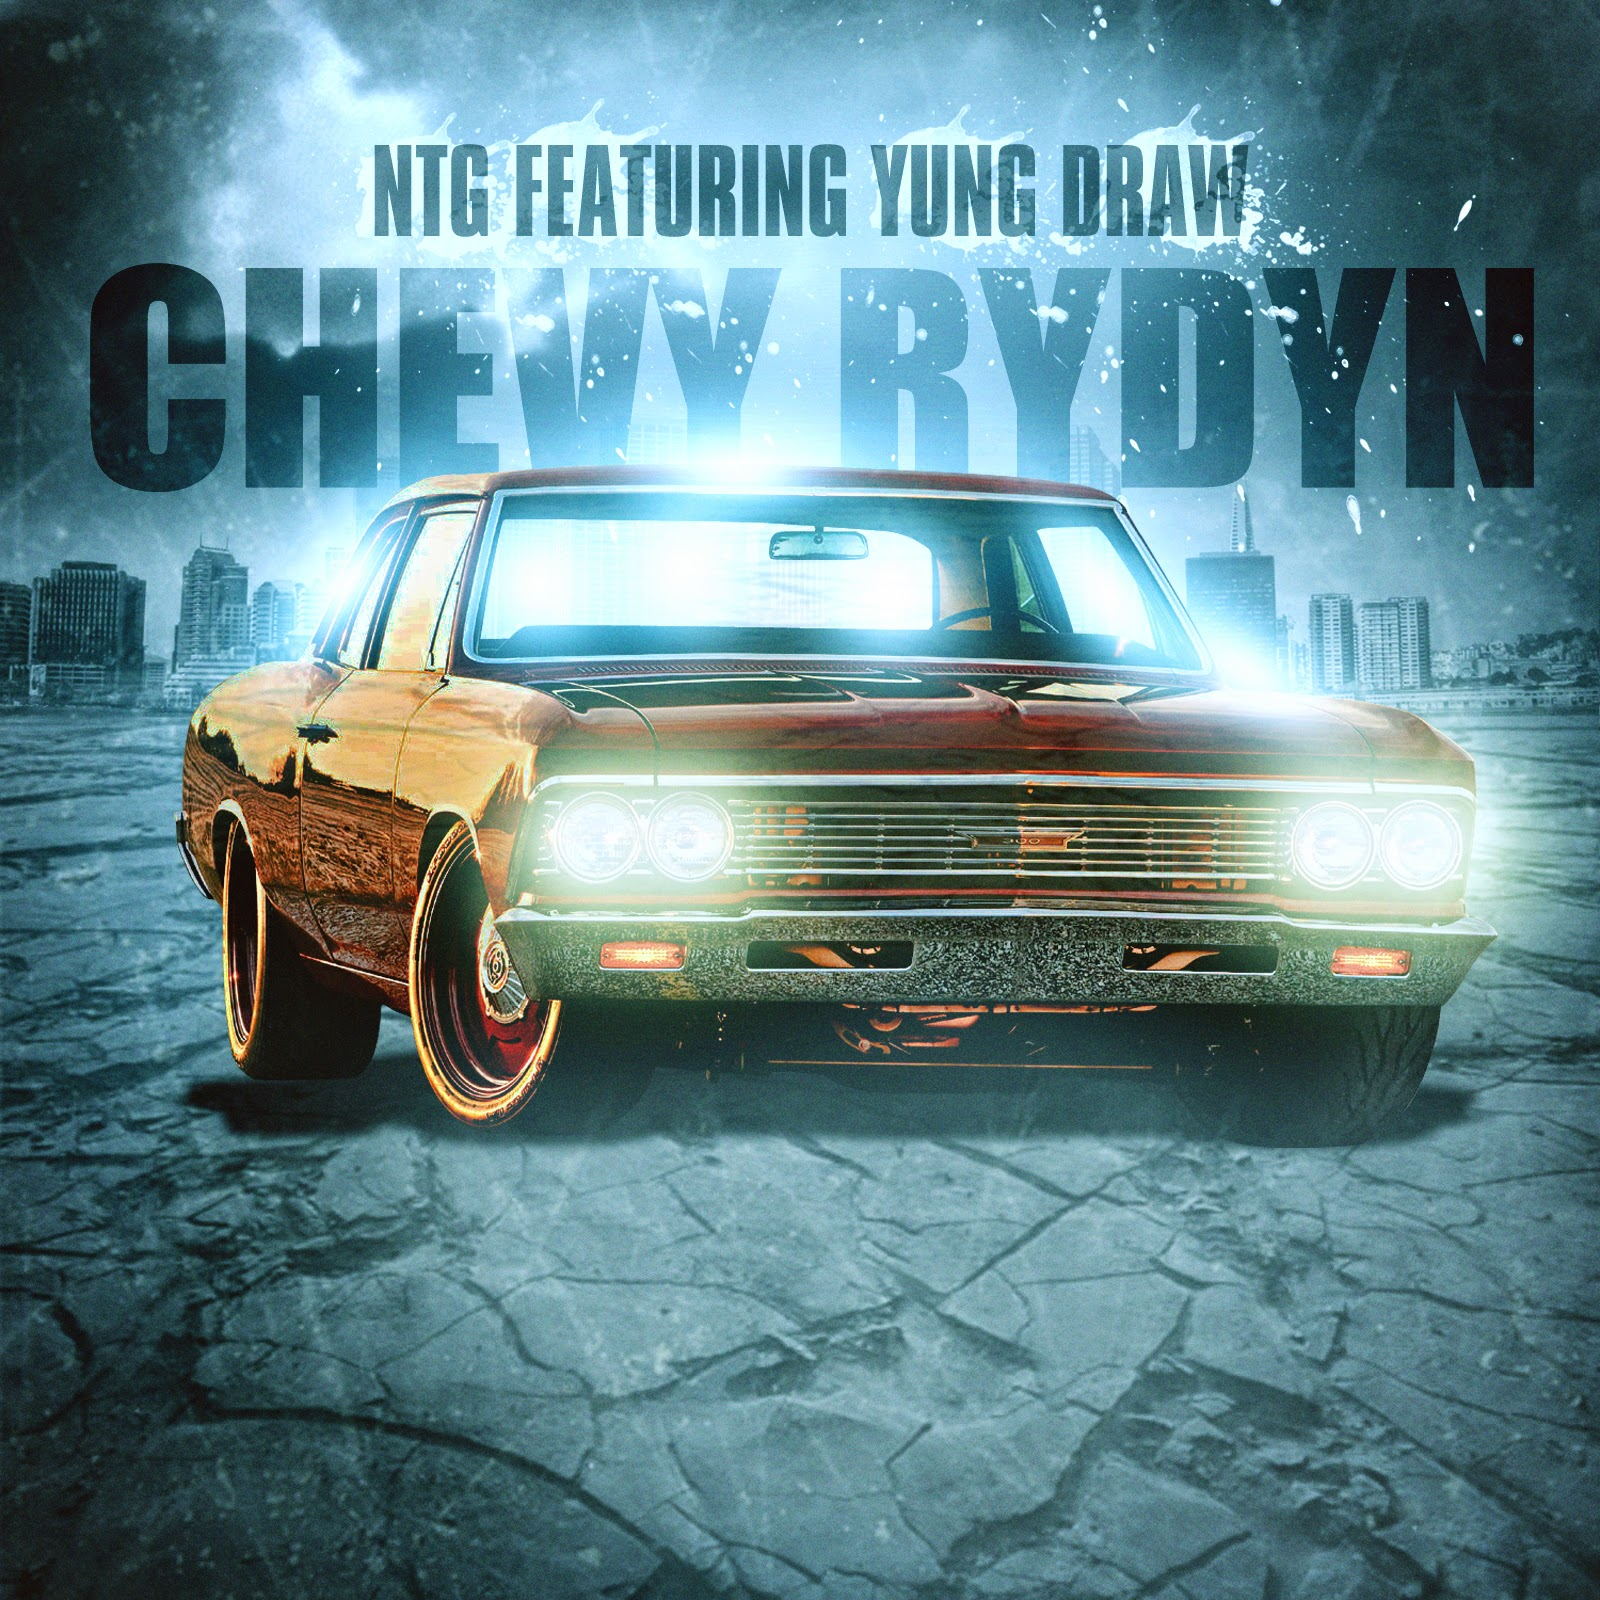 https://itunes.apple.com/us/album/chevy-rydyn-single/id929442678